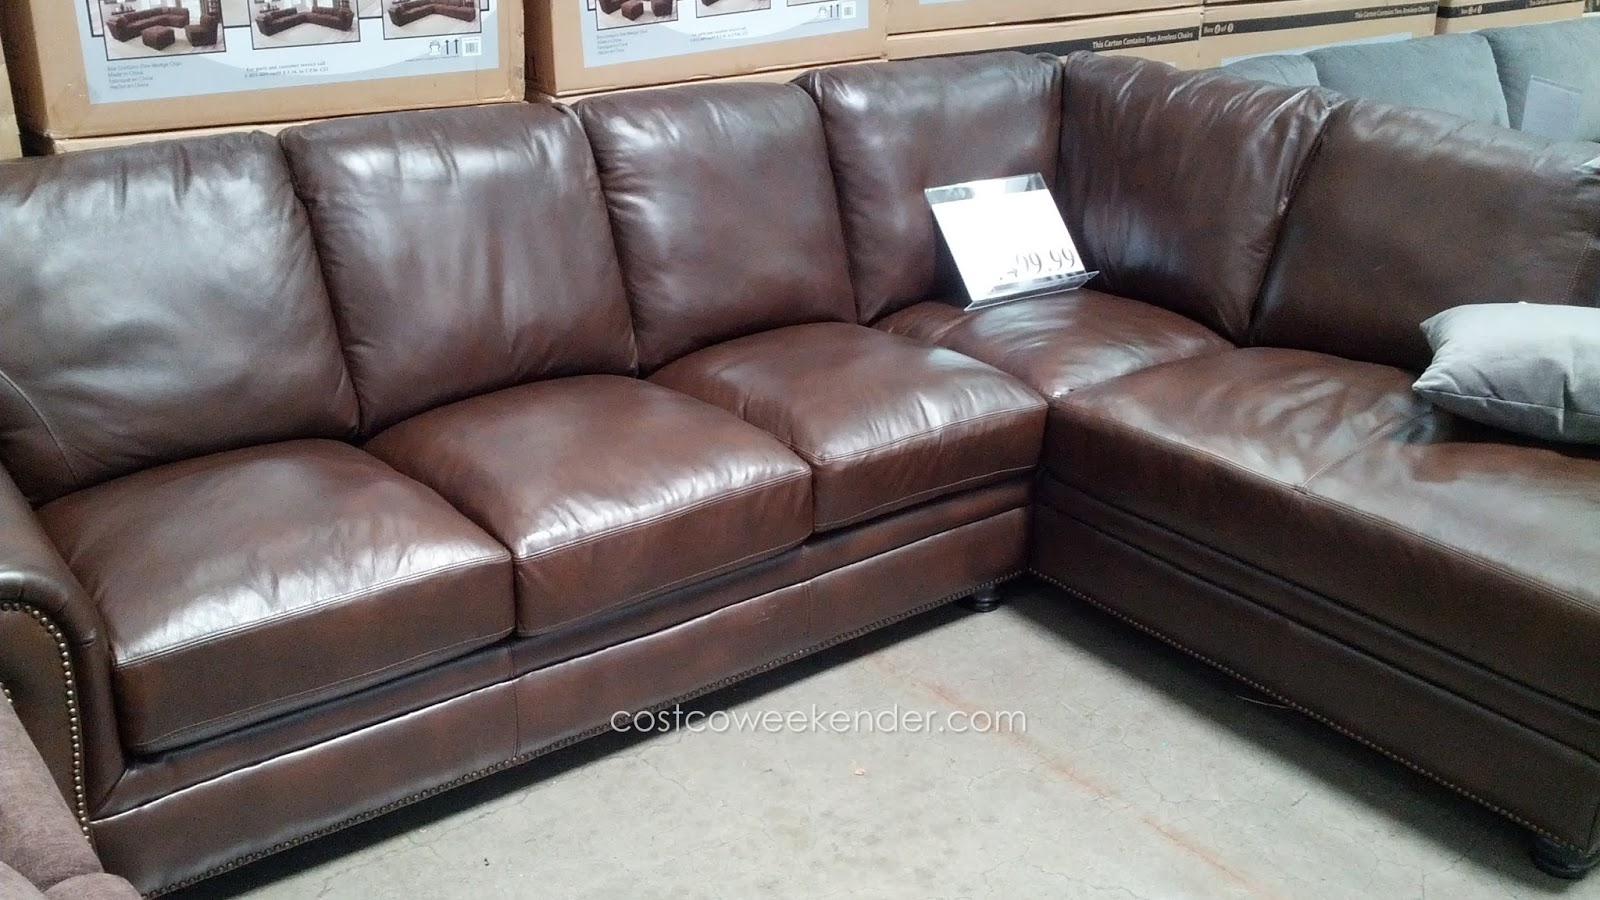 Marks & Cohen Savoy 2 Piece Leather Sectional Couch | Costco Weekender with regard to Cohen Down 2 Piece Sectionals